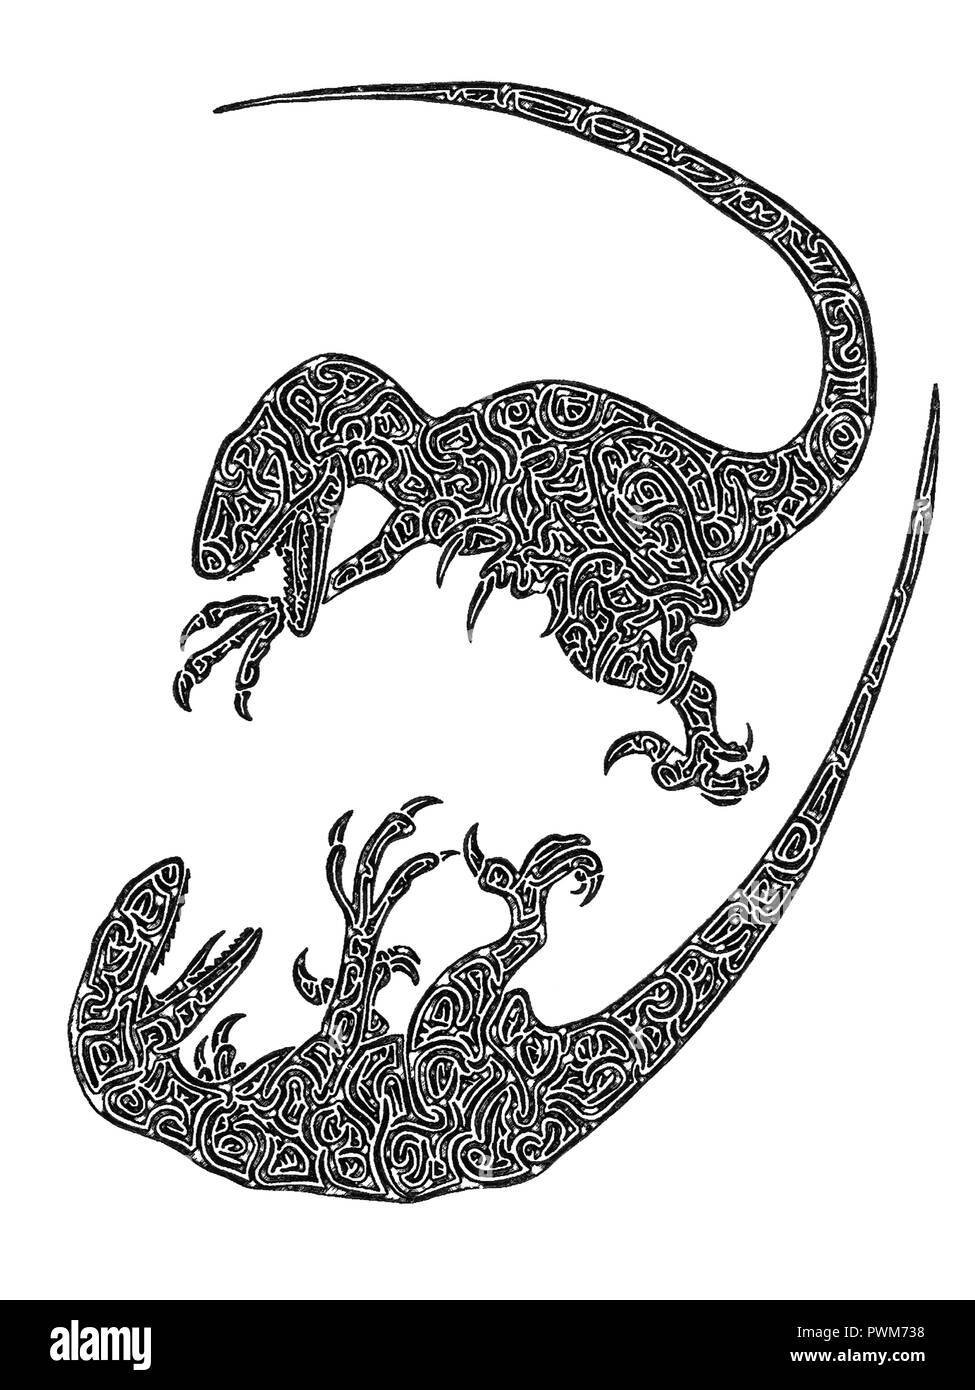 Illustration of two raptors fighting each other, black and white, drawing, maze lines - Stock Image